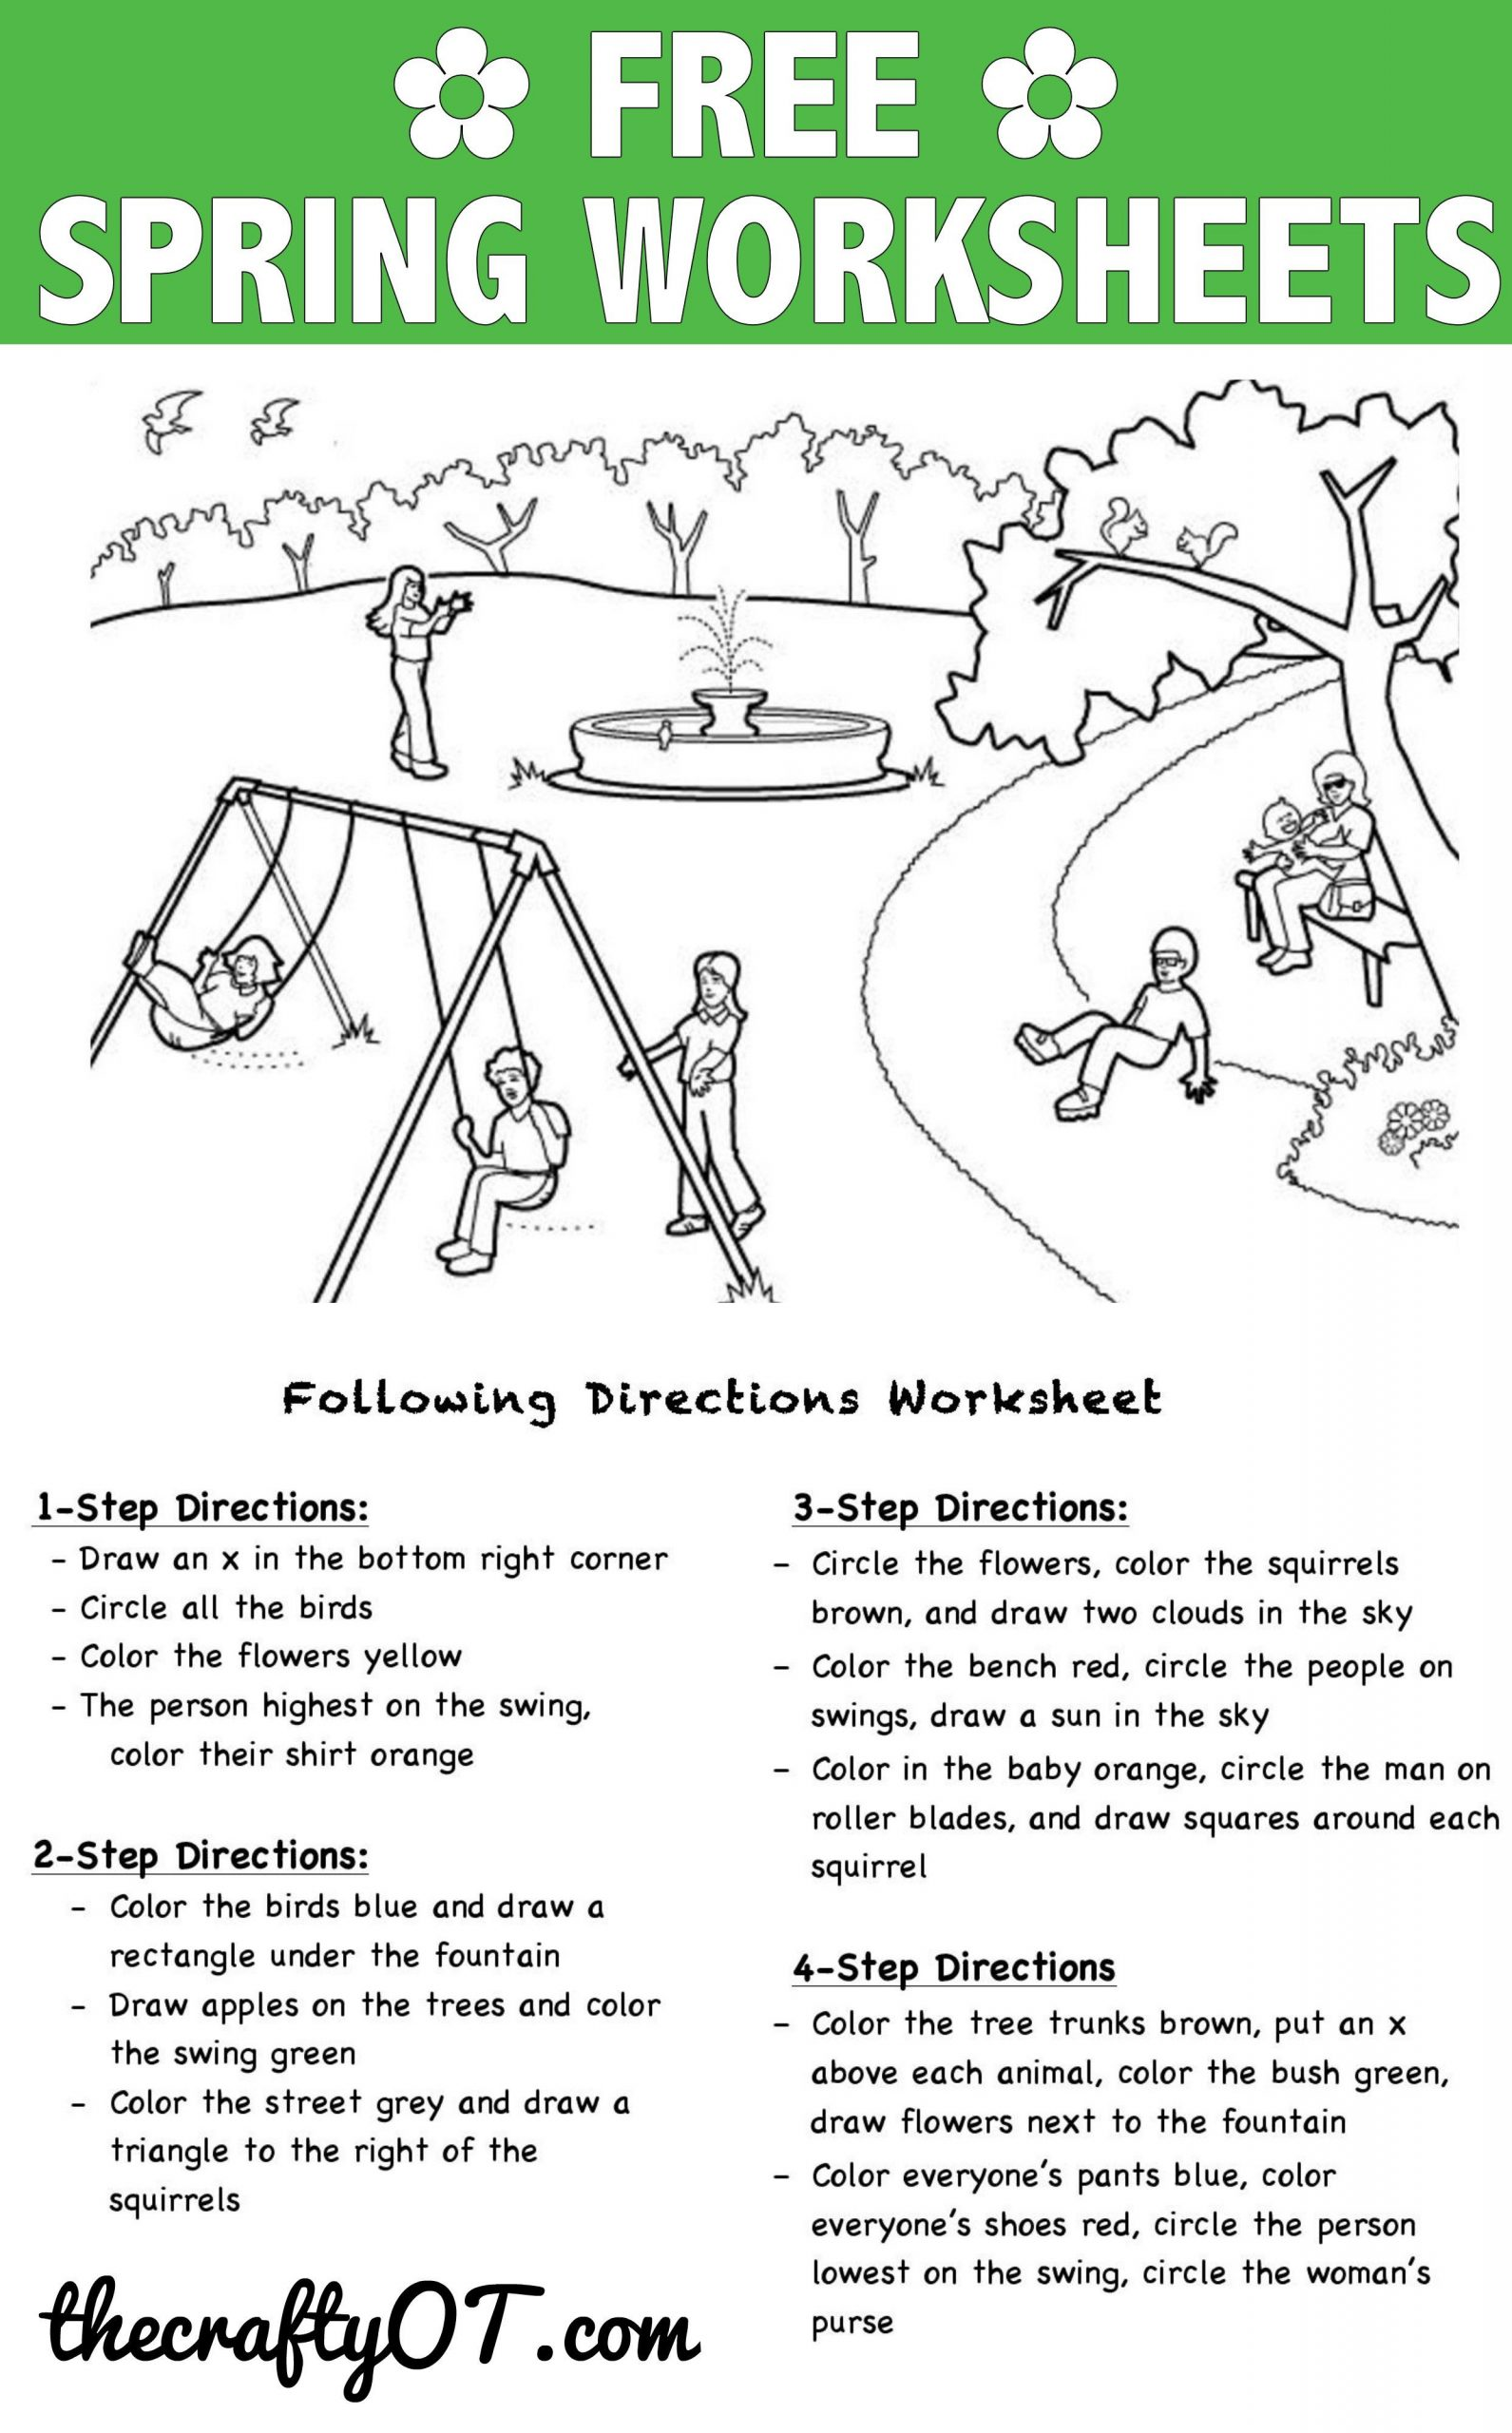 Following Directions Worksheet Trick